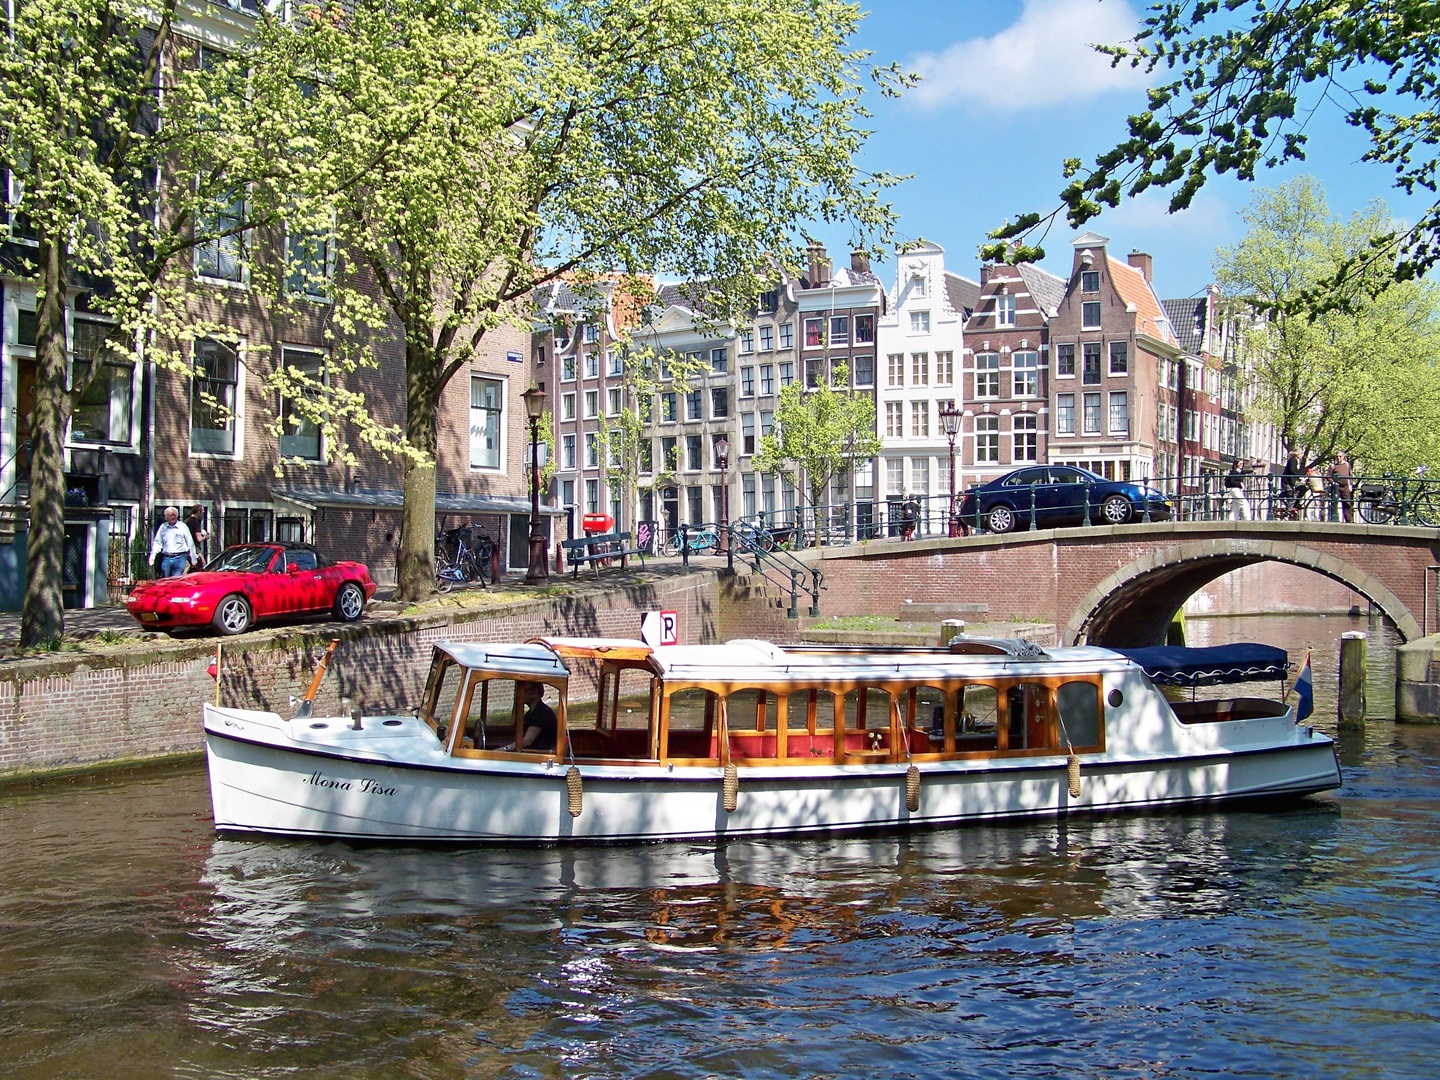 Amsterdam corporate event venues Bateau 't Smidtje - Fairboat Mona Lisa image 0